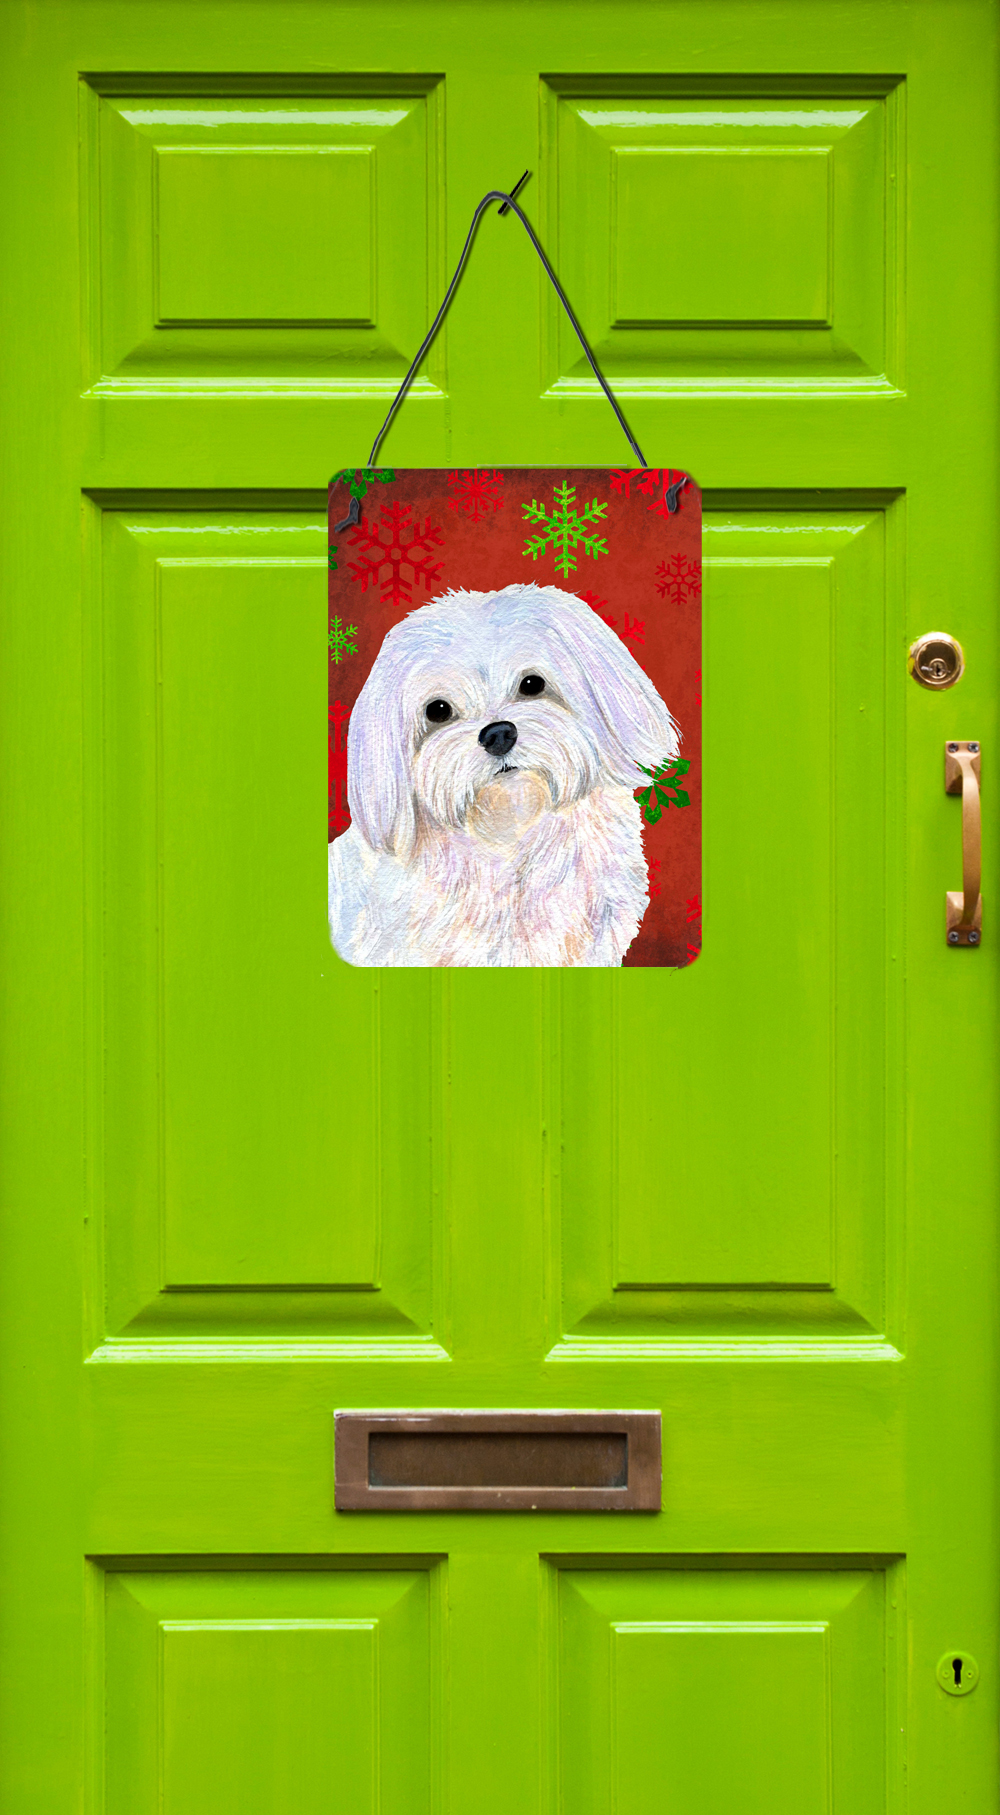 Carolines Treasures SS4689DS1216 Maltese Red and Green Snowflakes Holiday Christmas Wall or Door Hanging Prints 16 x 12 Multicolor